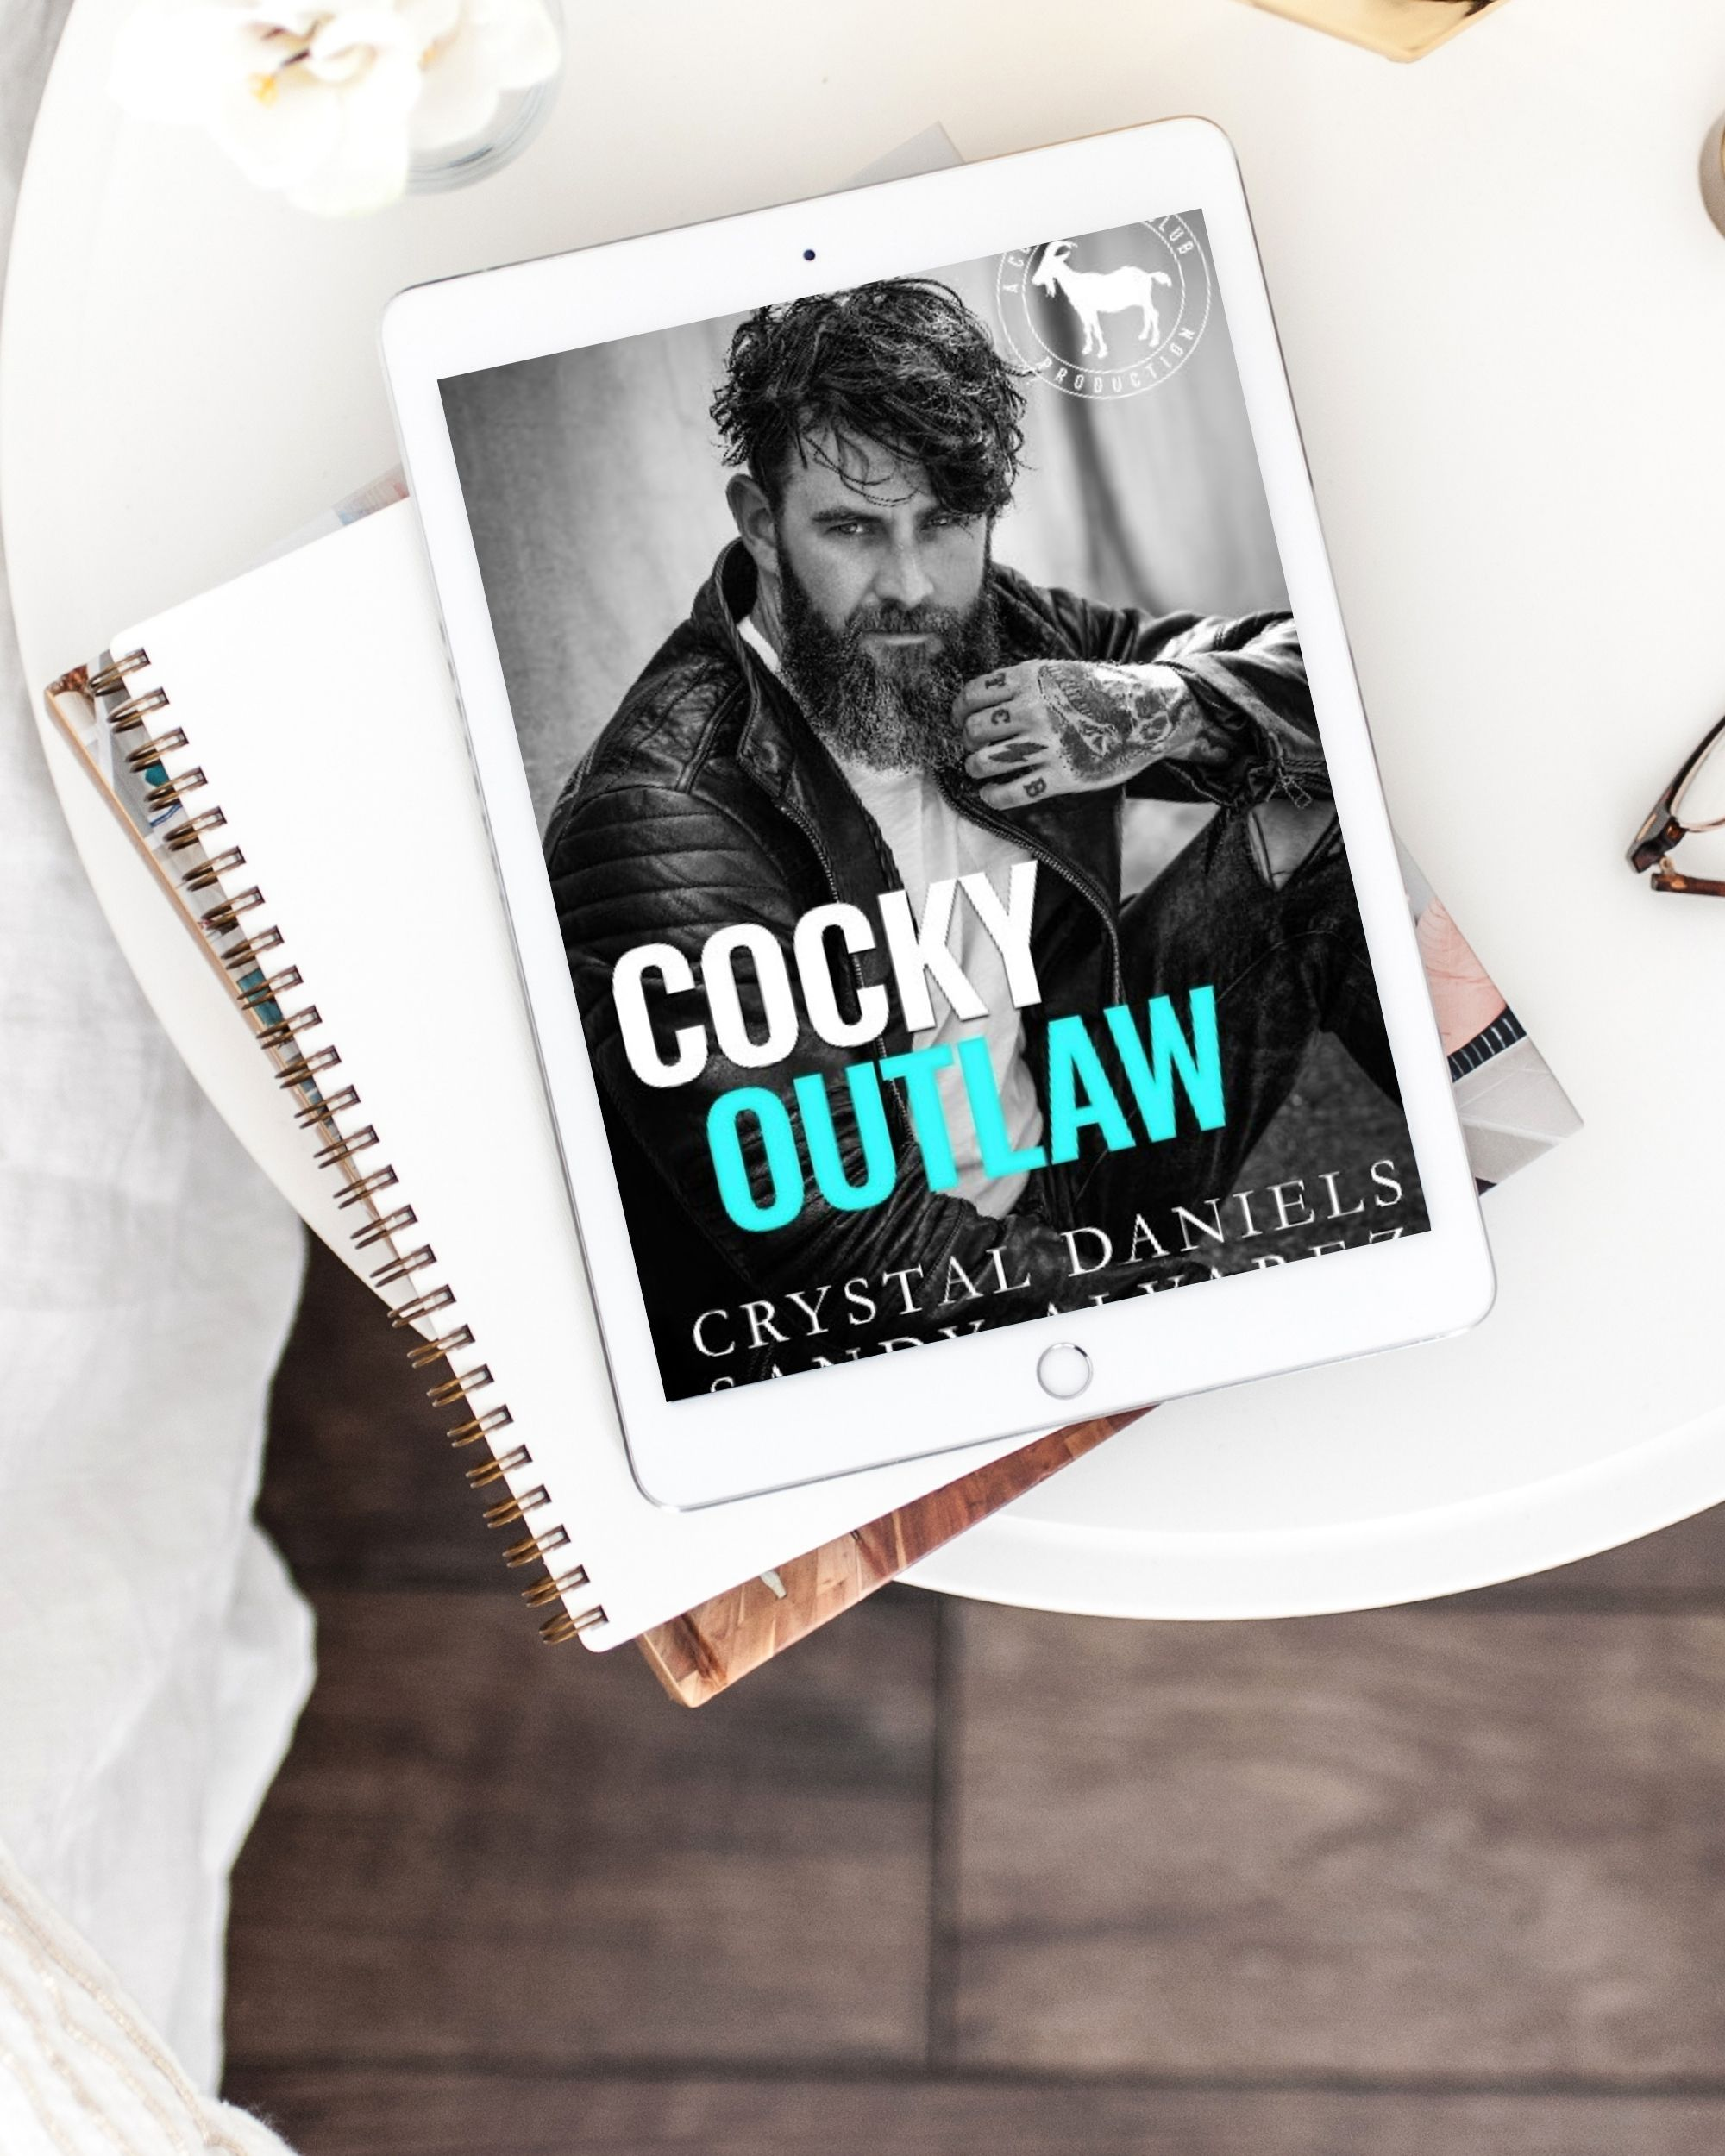 Cocky Outlaw Book Review at Wickedly Romance